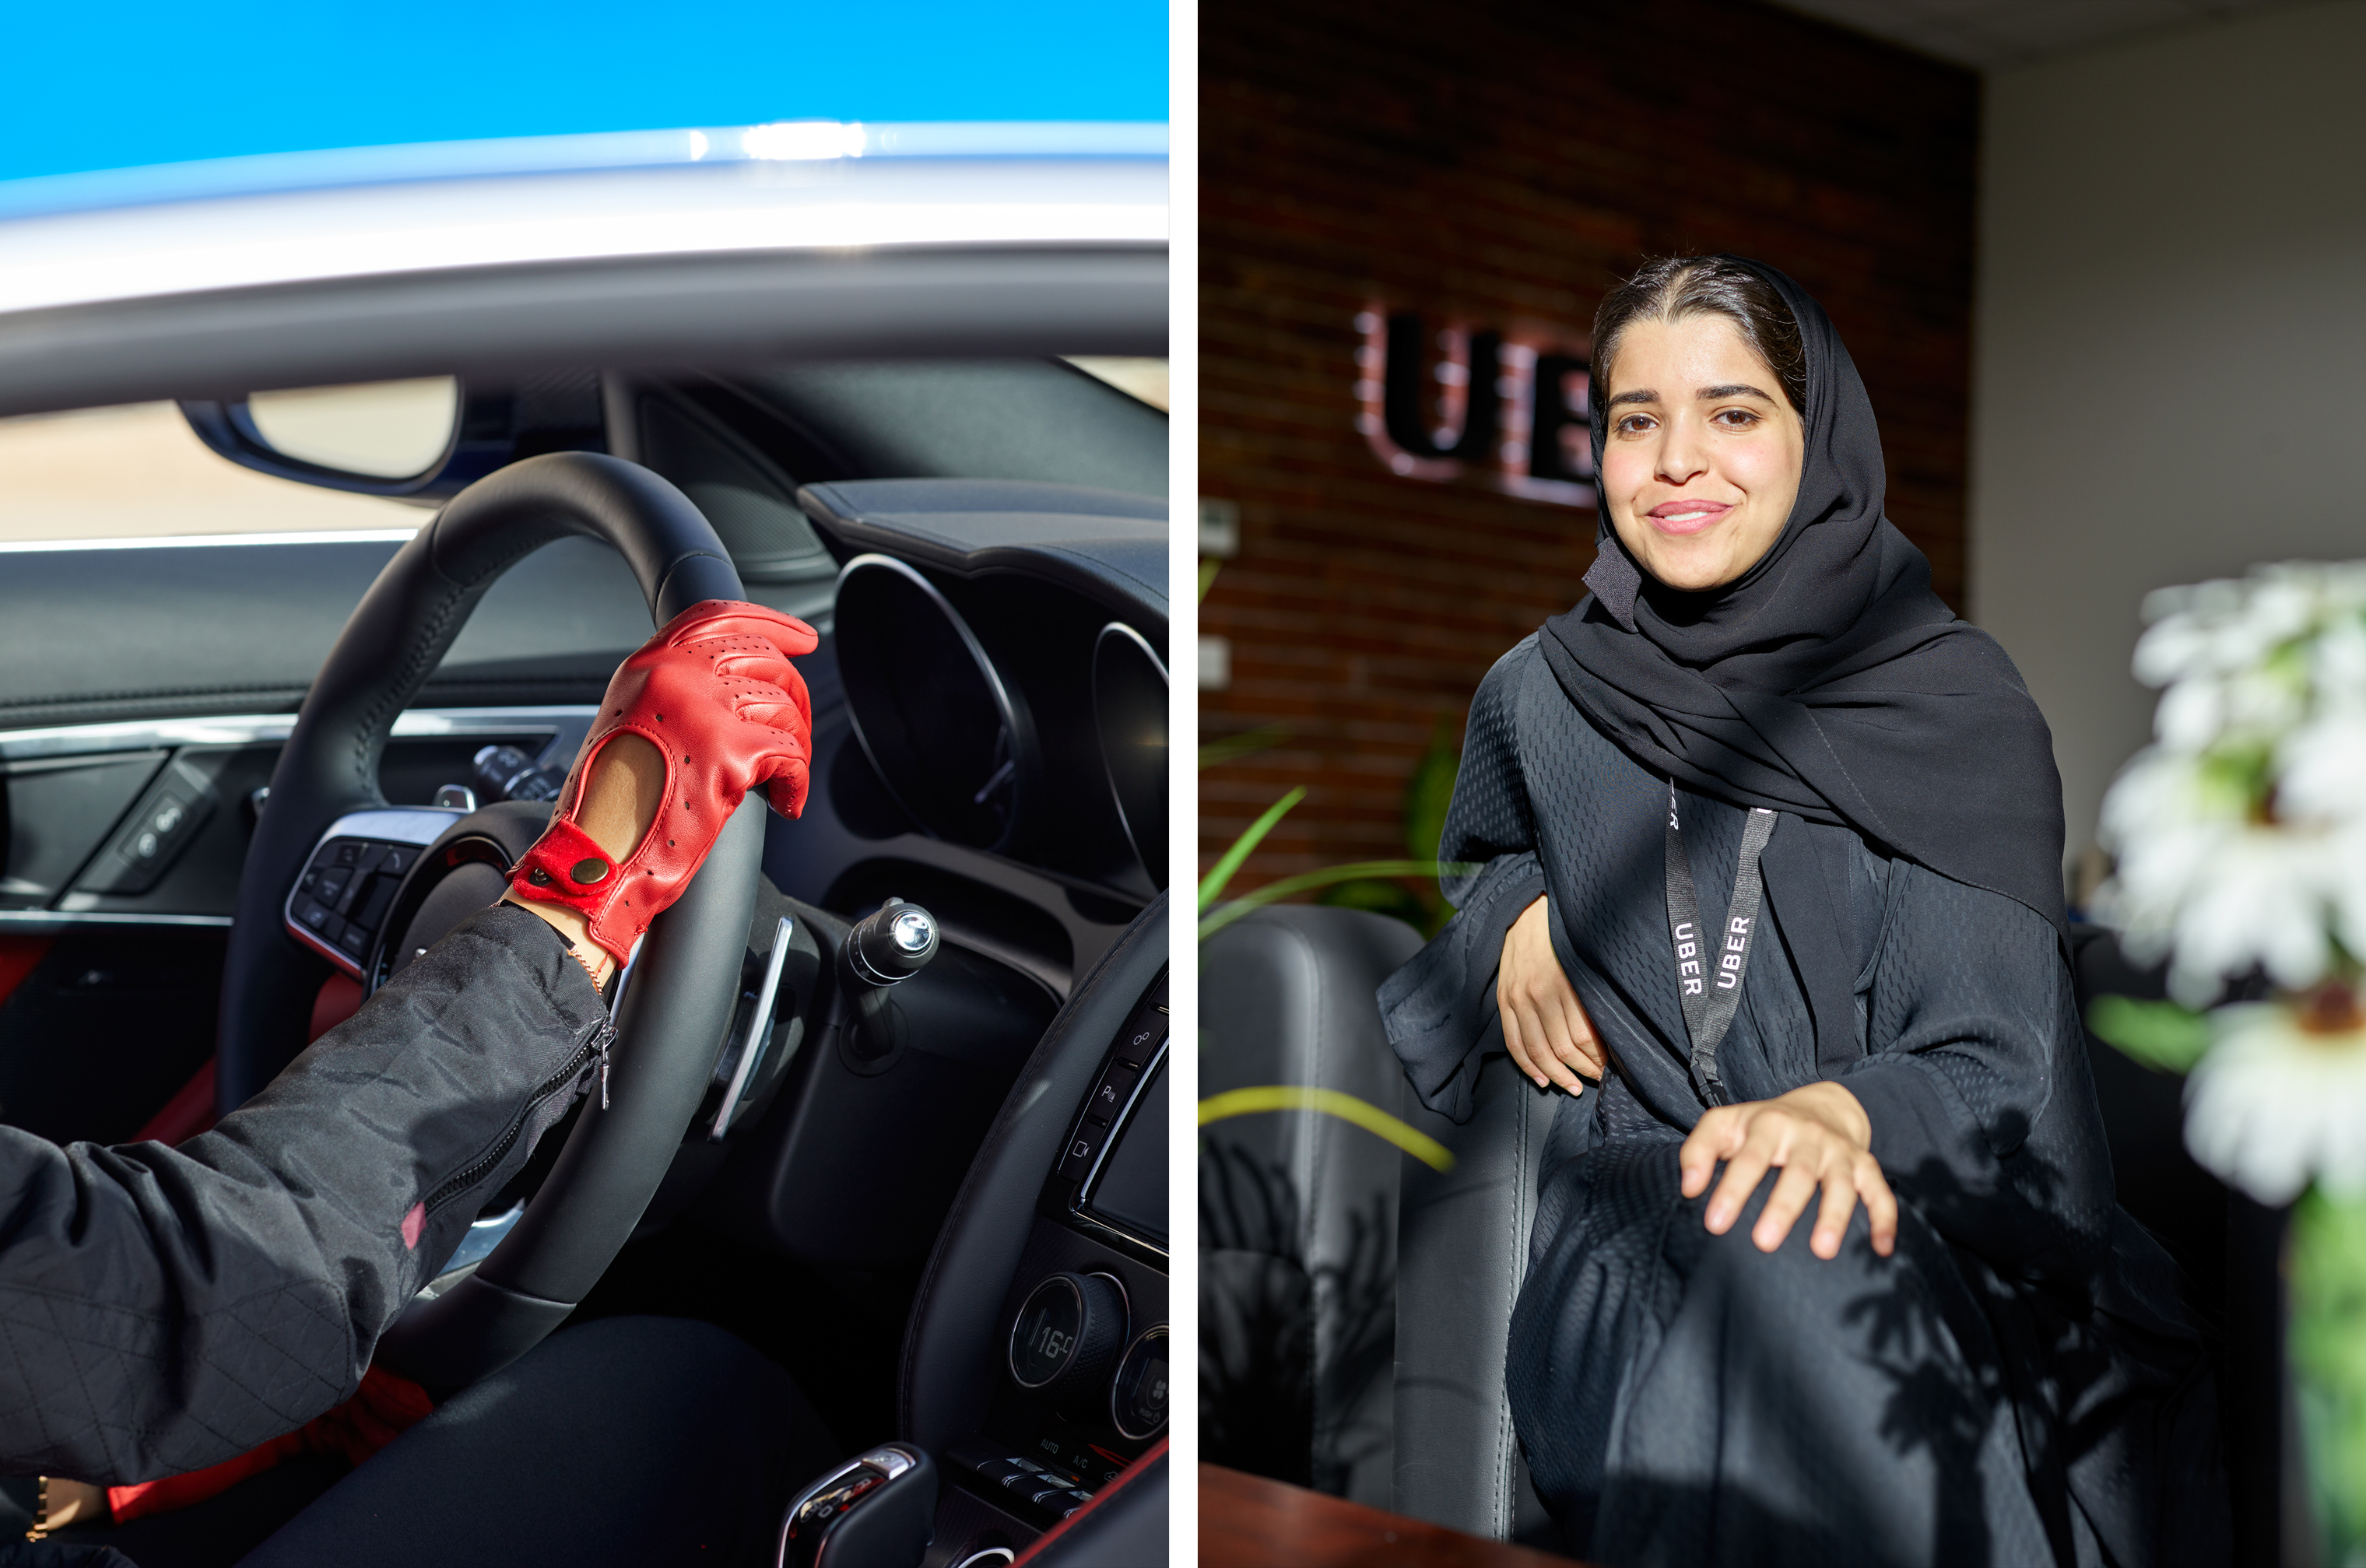 Behind the wheel with race-car driver Aseel al-Hamad; Ohoud al-Arifi, marketing manager for Uber Saudi Arabia.